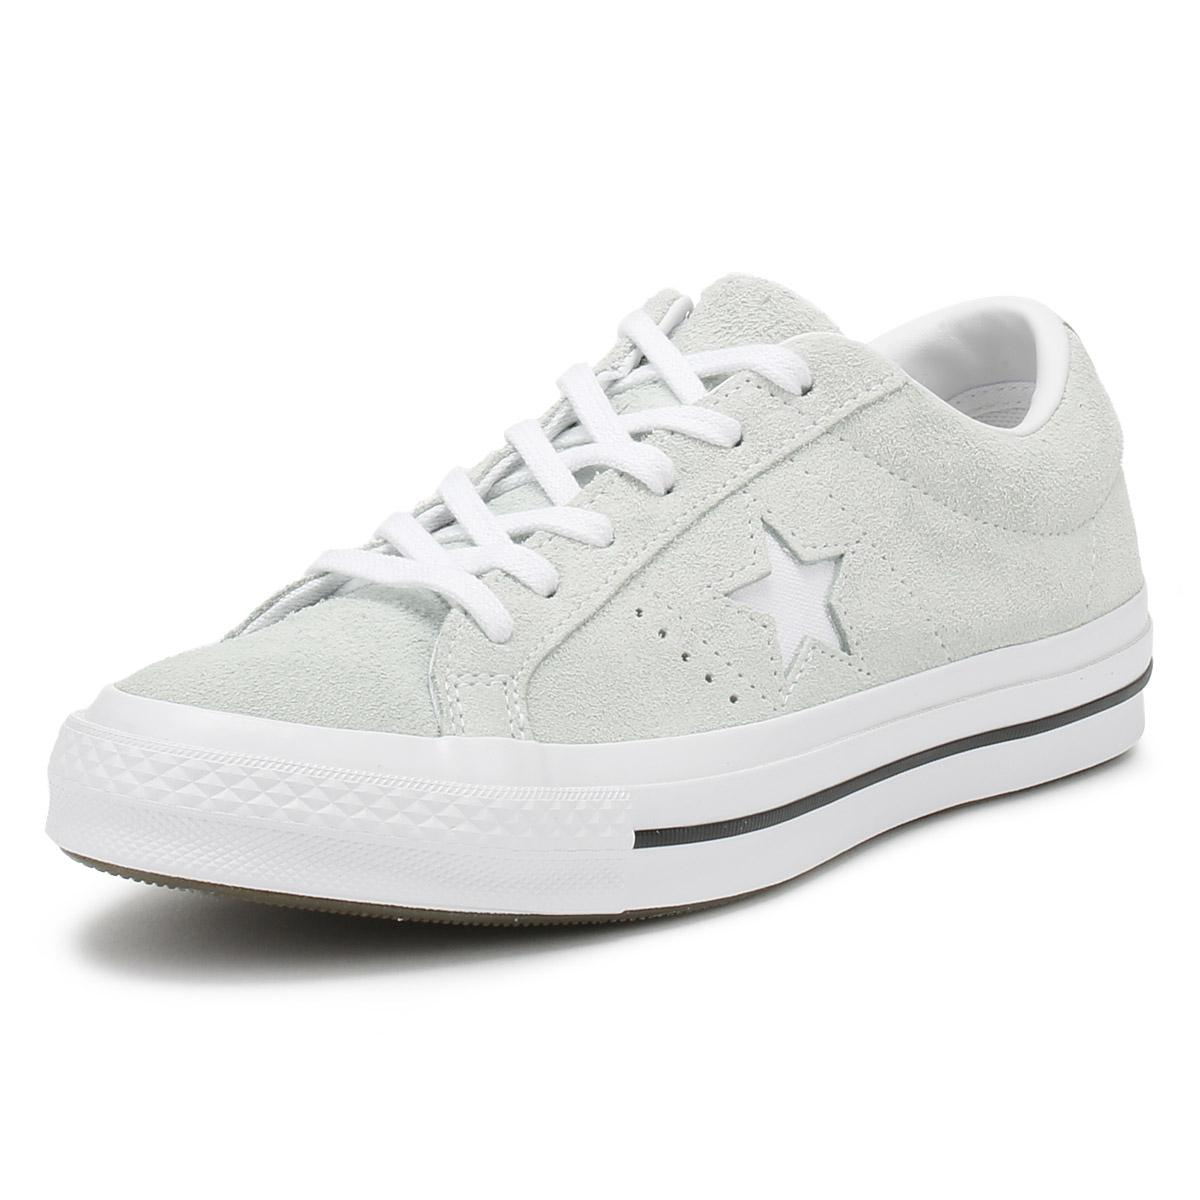 Lyst - Converse One Star Mens Dried Bamboo Green Suede Ox Trainers ... 695830d40